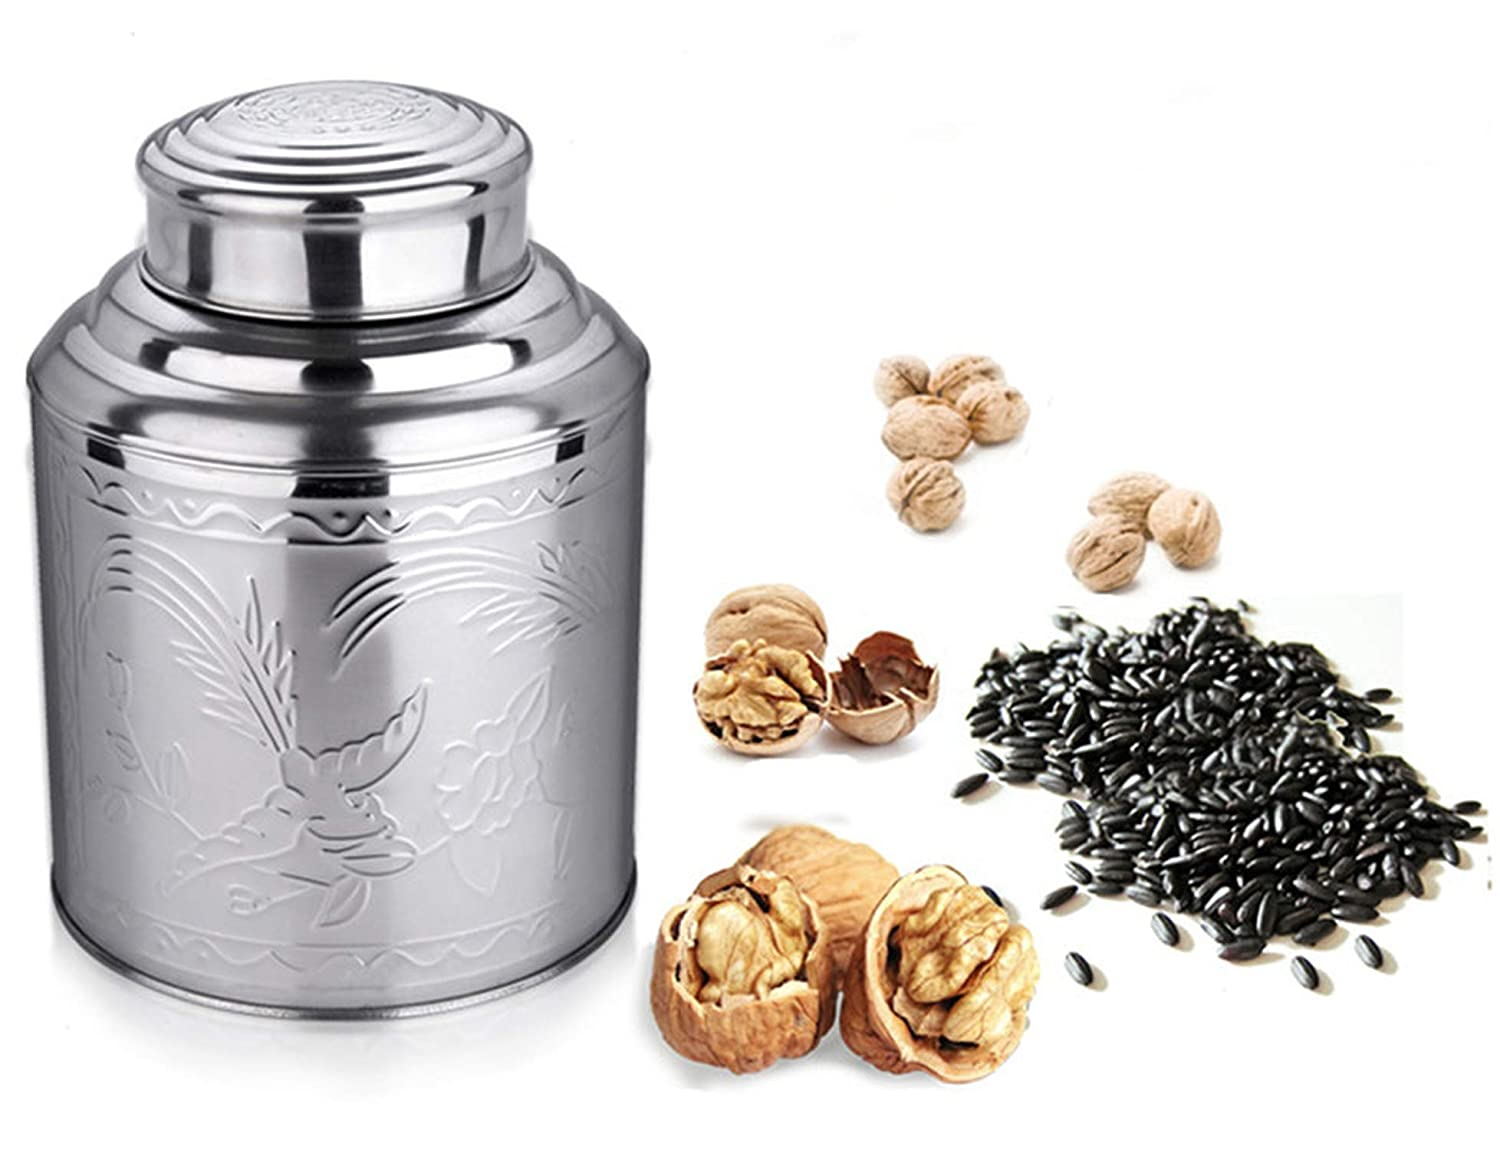 Thick Stainless Steel Tea Box Metal for Chinese Green Tea Storage Tea Caddy Box Coffee Container Walnut Canister 1Pc,10X14Cm for 150G Tea